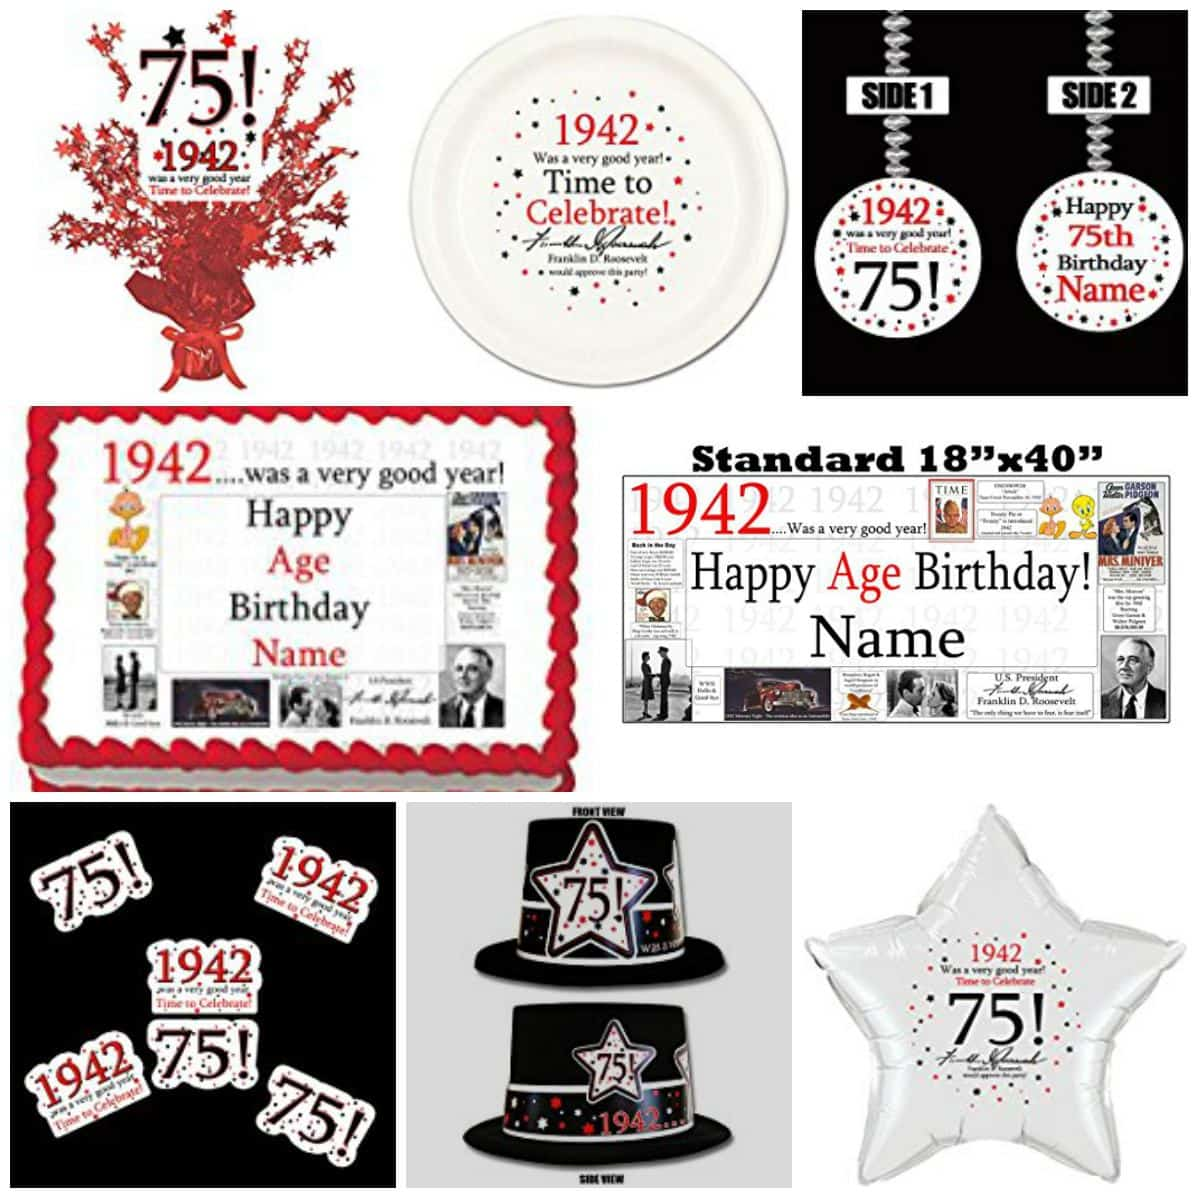 1942 was a very good year 75th birthday party theme for 75th birthday decoration